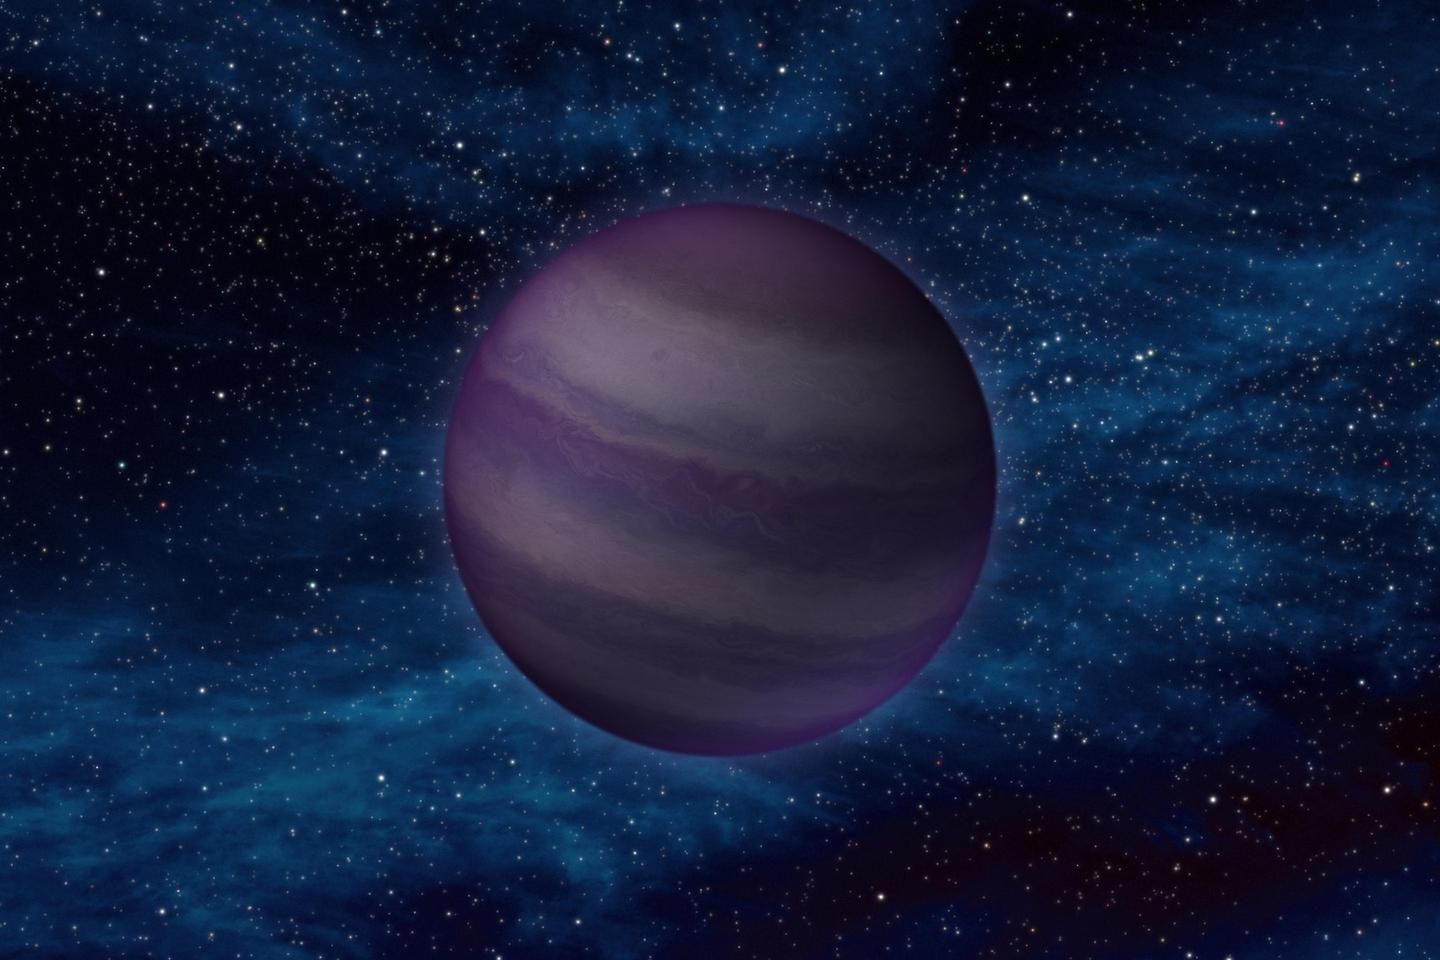 Anew definition has been proposed for what constitutes a planet, in order to separate them from brown dwarfs